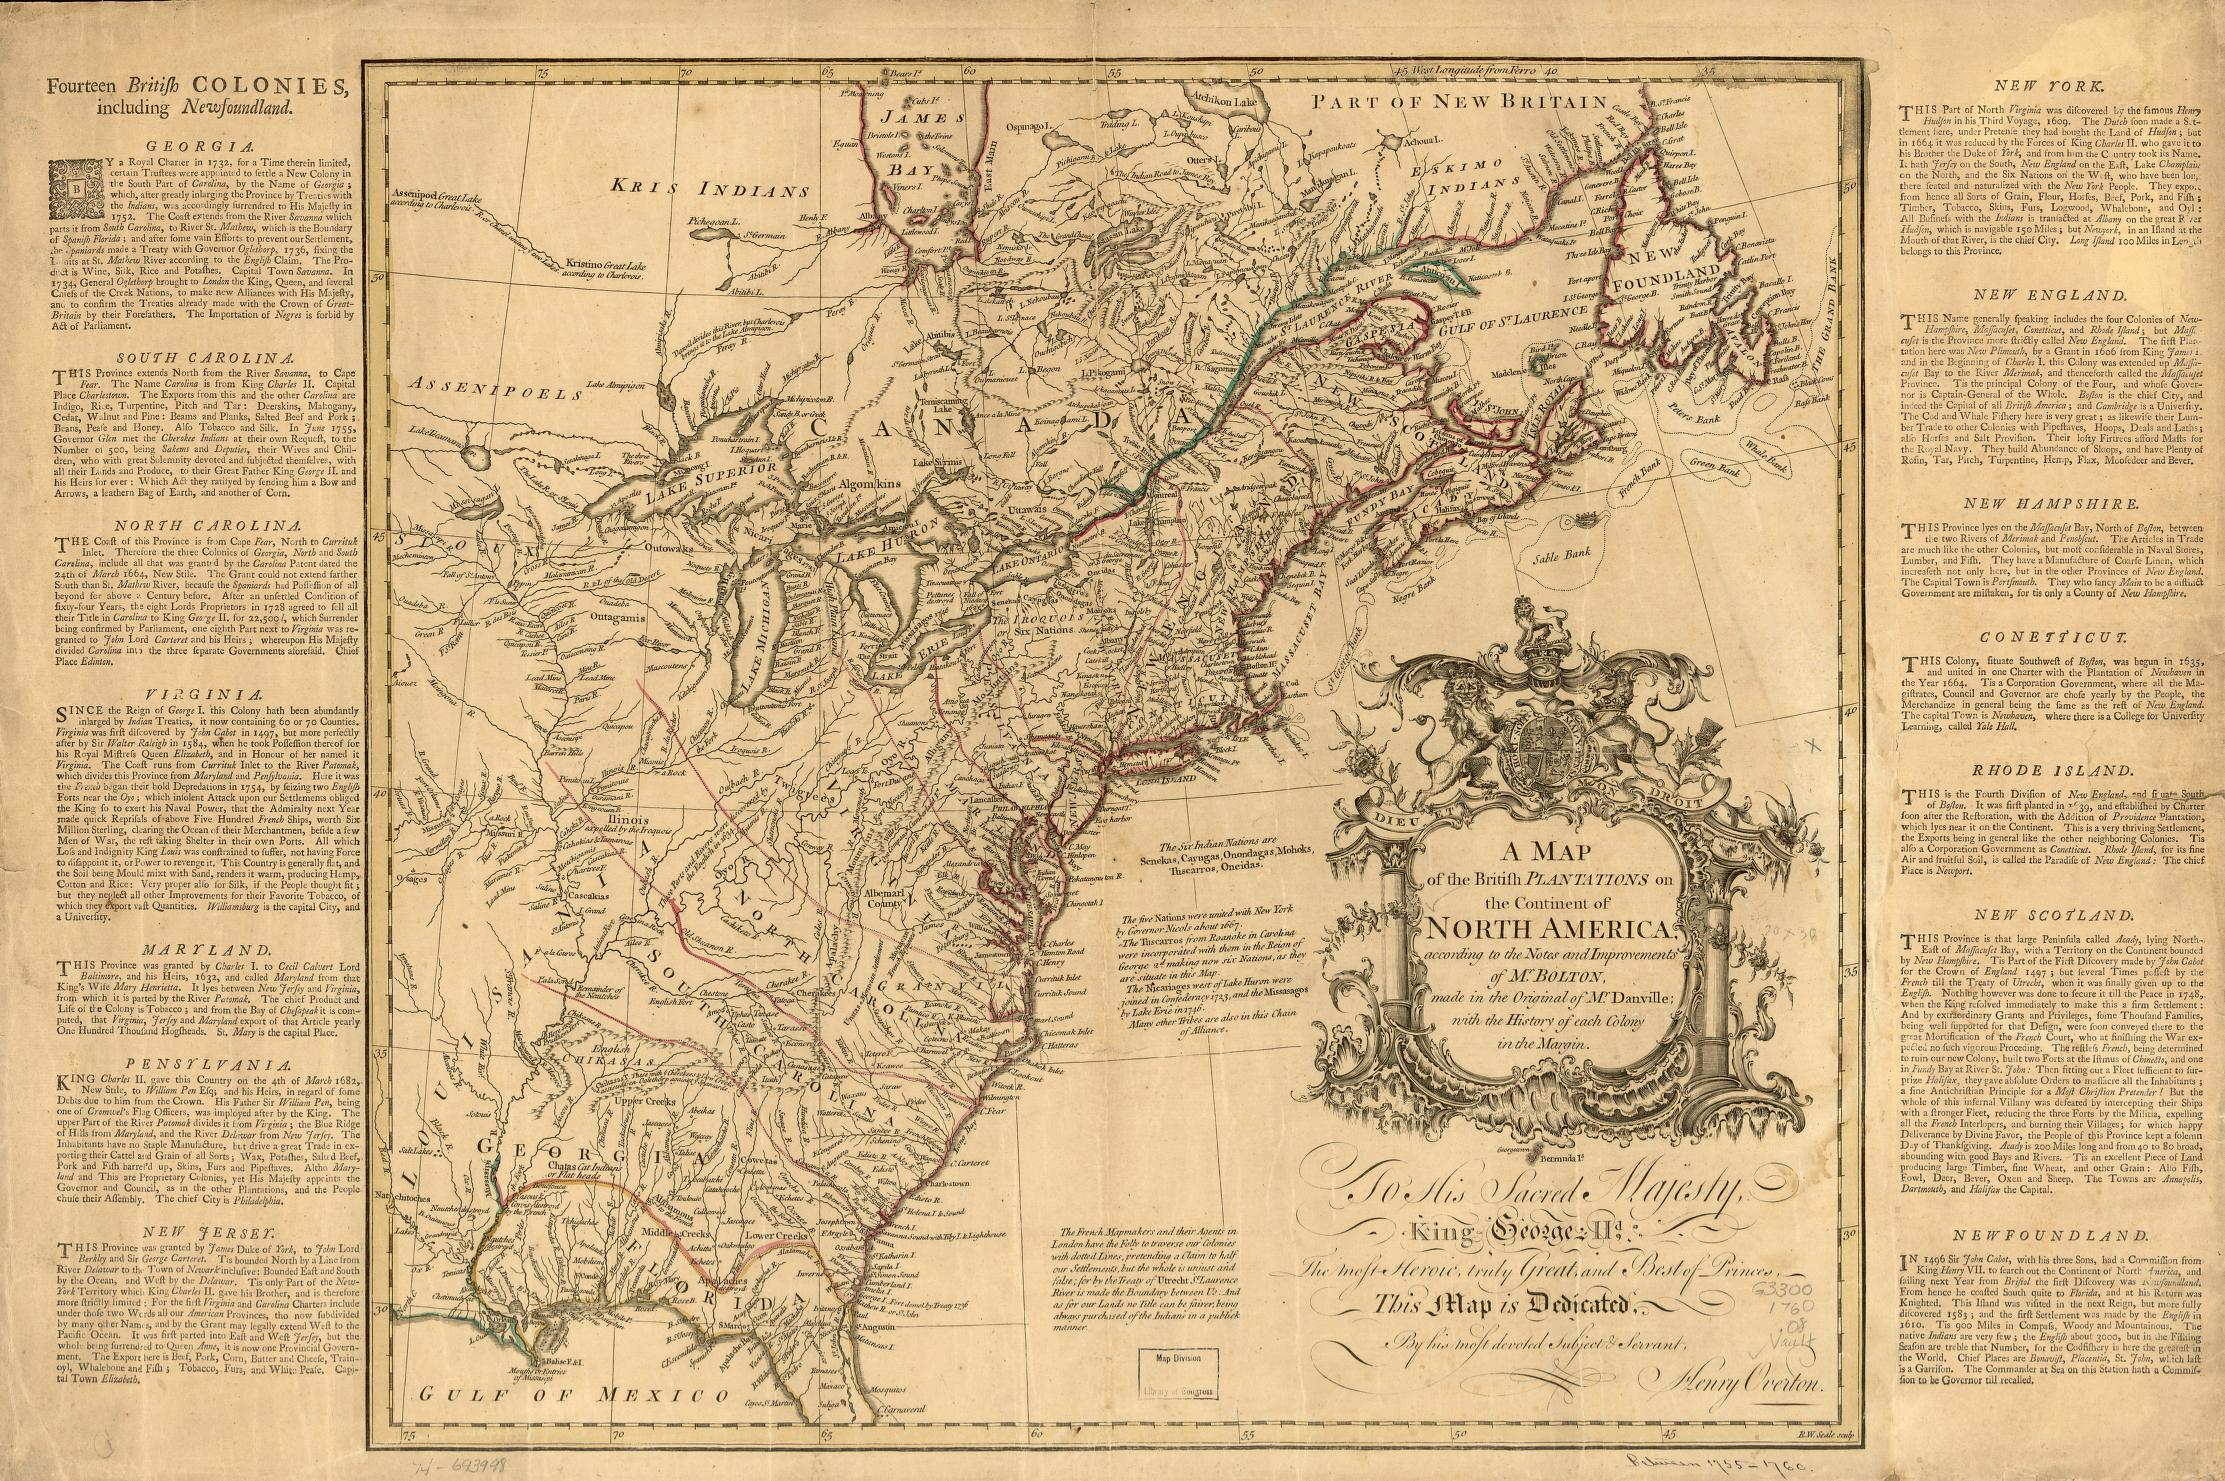 1754 5 A Map Of The British Plantations On The Continent Of North America According To The Notes And Improvements Of Mr Bolton Made In The Original Of